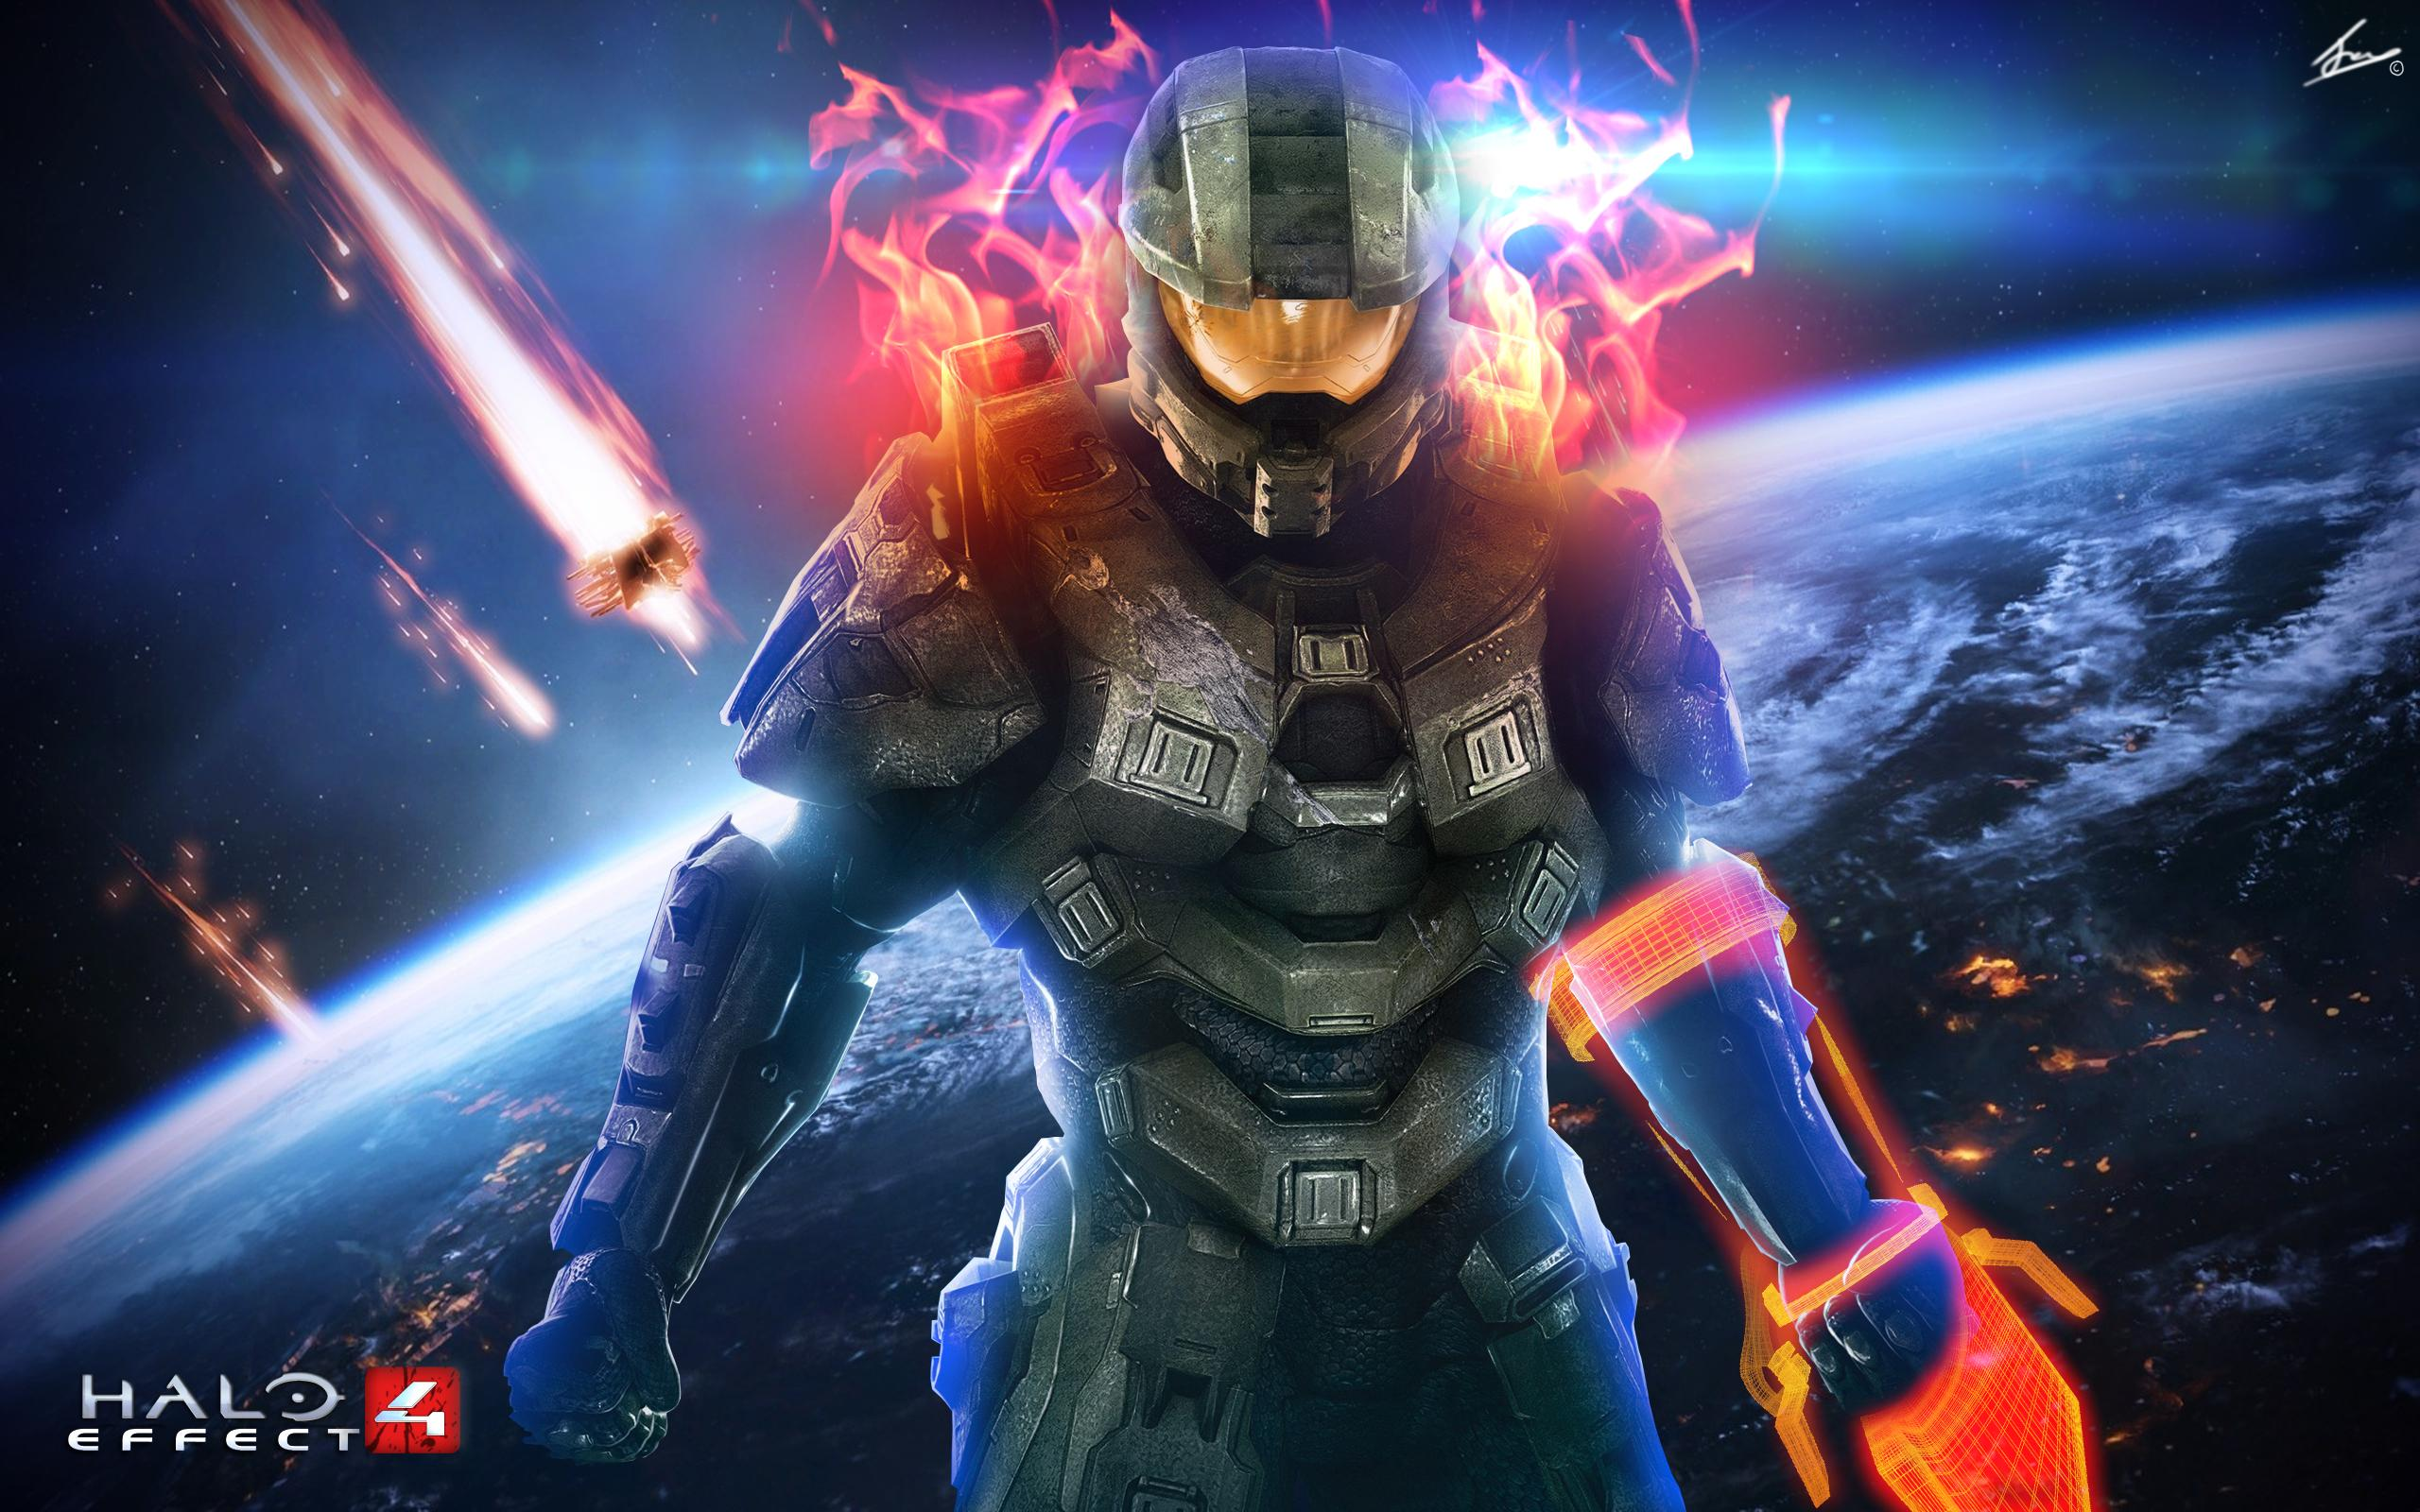 Cool Halo 4 Wallpapers 2560x1600